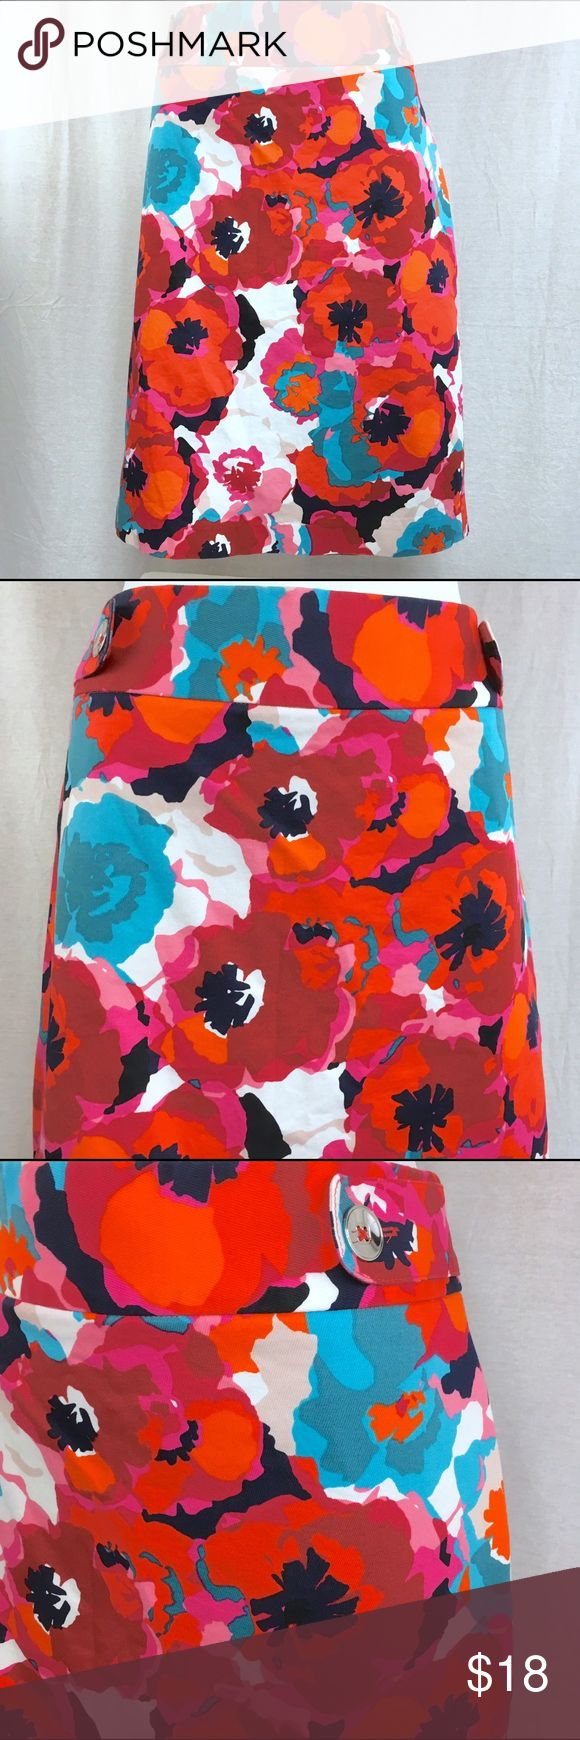 rafaella Red Floral Print Skirt - Size 14 This skirt is in great condition.  It has been gently preloved.  Laying flat, the waist measures 18 inches.  From the top of the waistband toward the knee, it measures 22 1/2 inches. Rafaella Skirts Pencil